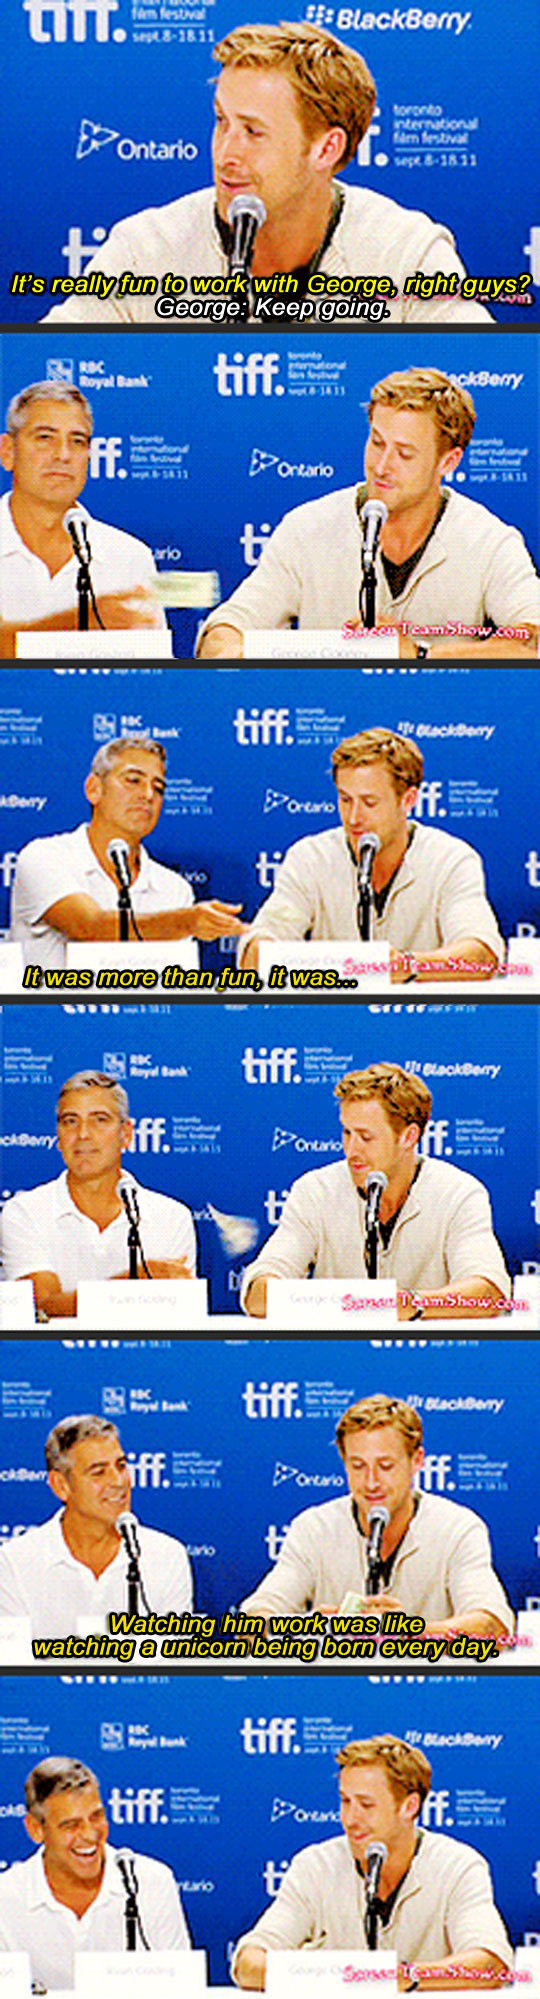 funny-picture-Ryan-Gosling-George-Clooney-unicorn-interview